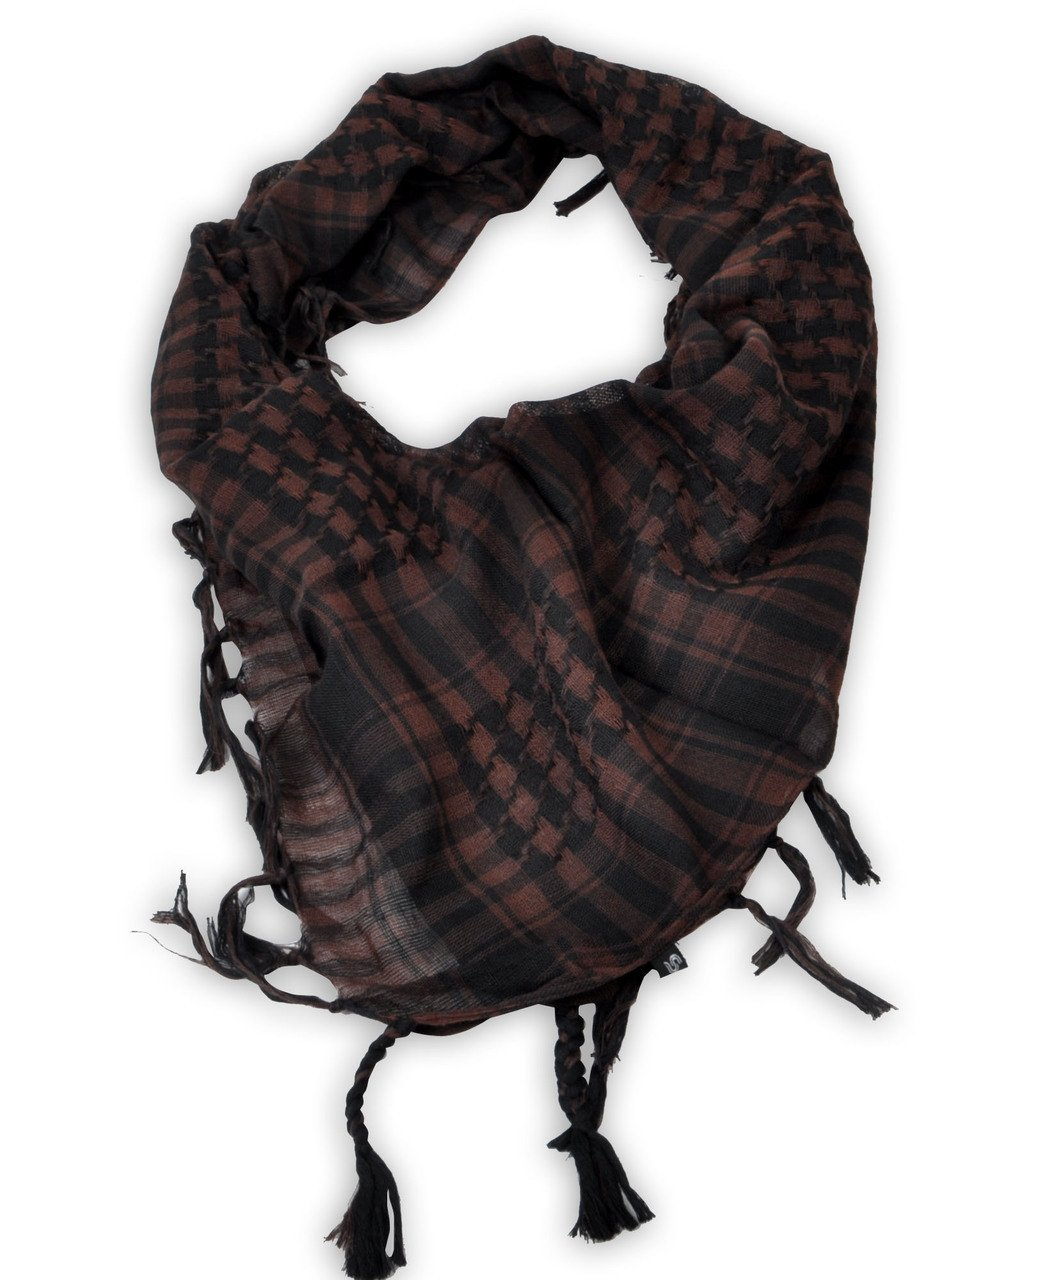 Houndstooth Plaid Pattern Scarves Shemagh